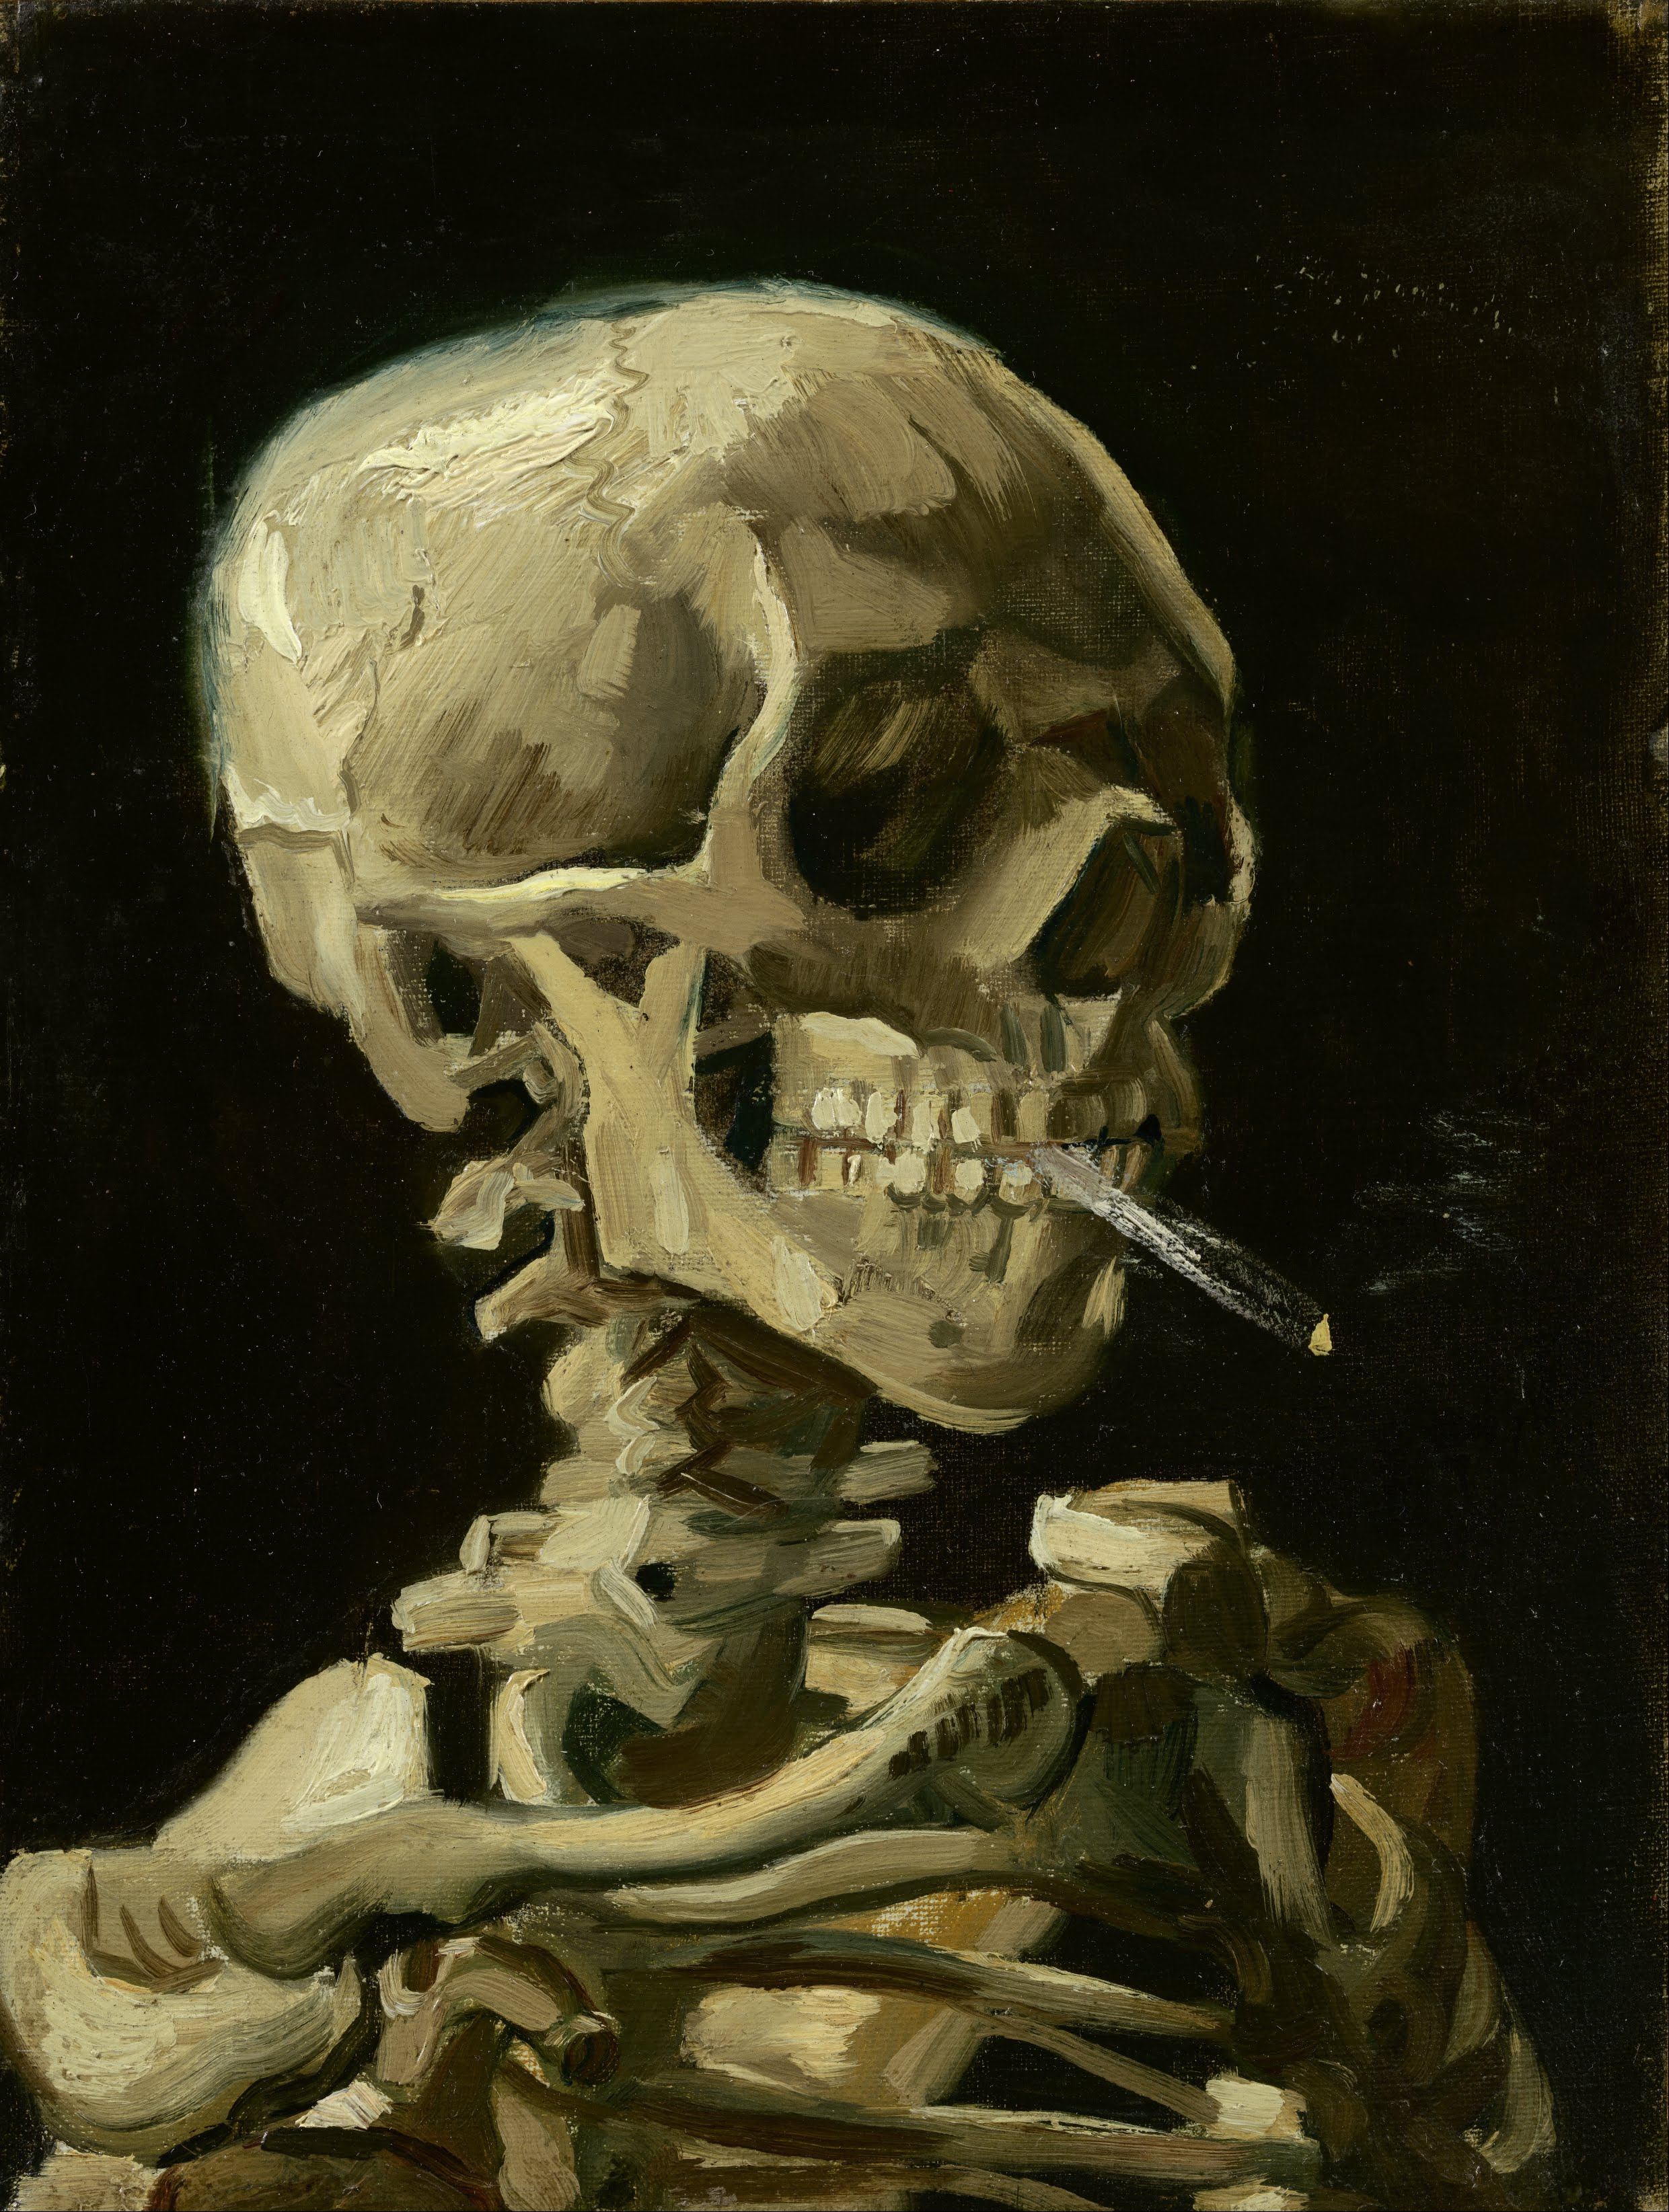 Vincent_van_Gogh 1886 January-February Head_of_a_skeleton_with_a_burning_cigarette Van Gogh Museum (F0212) 24.5 x 32 cm ×